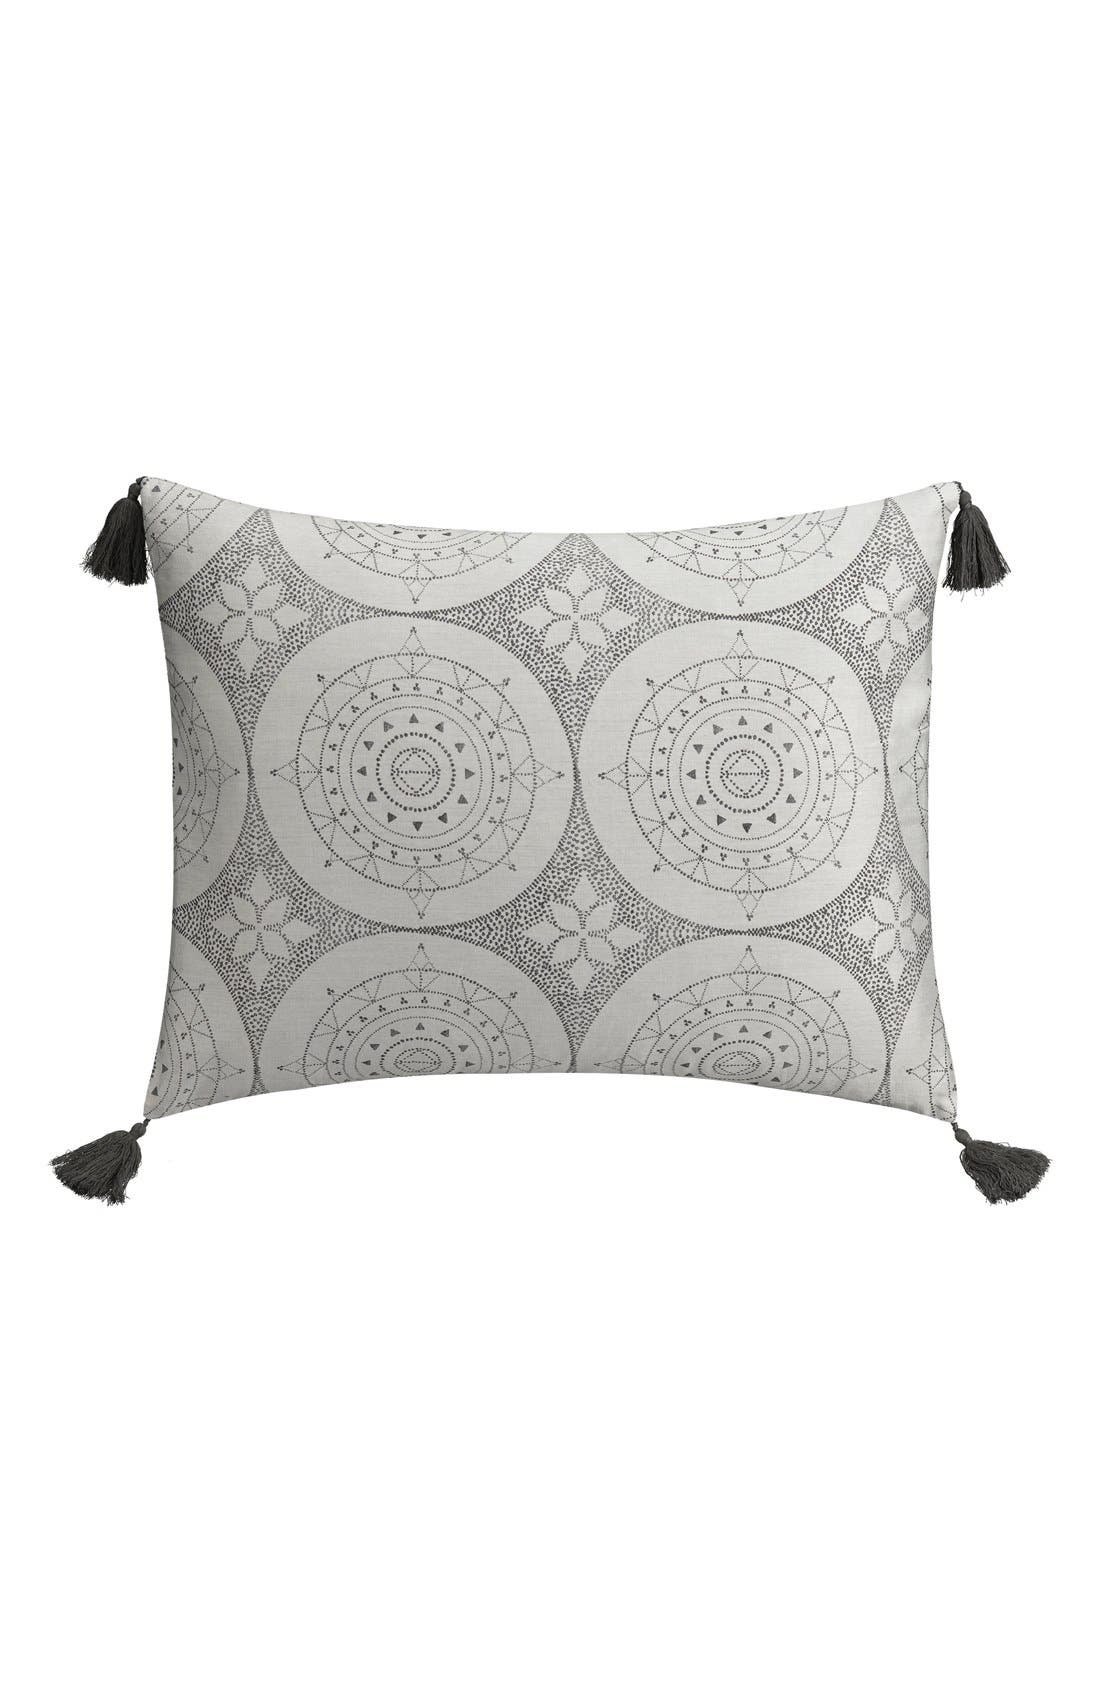 CUPCAKES AND CASHMERE Dotted Medallion Sham